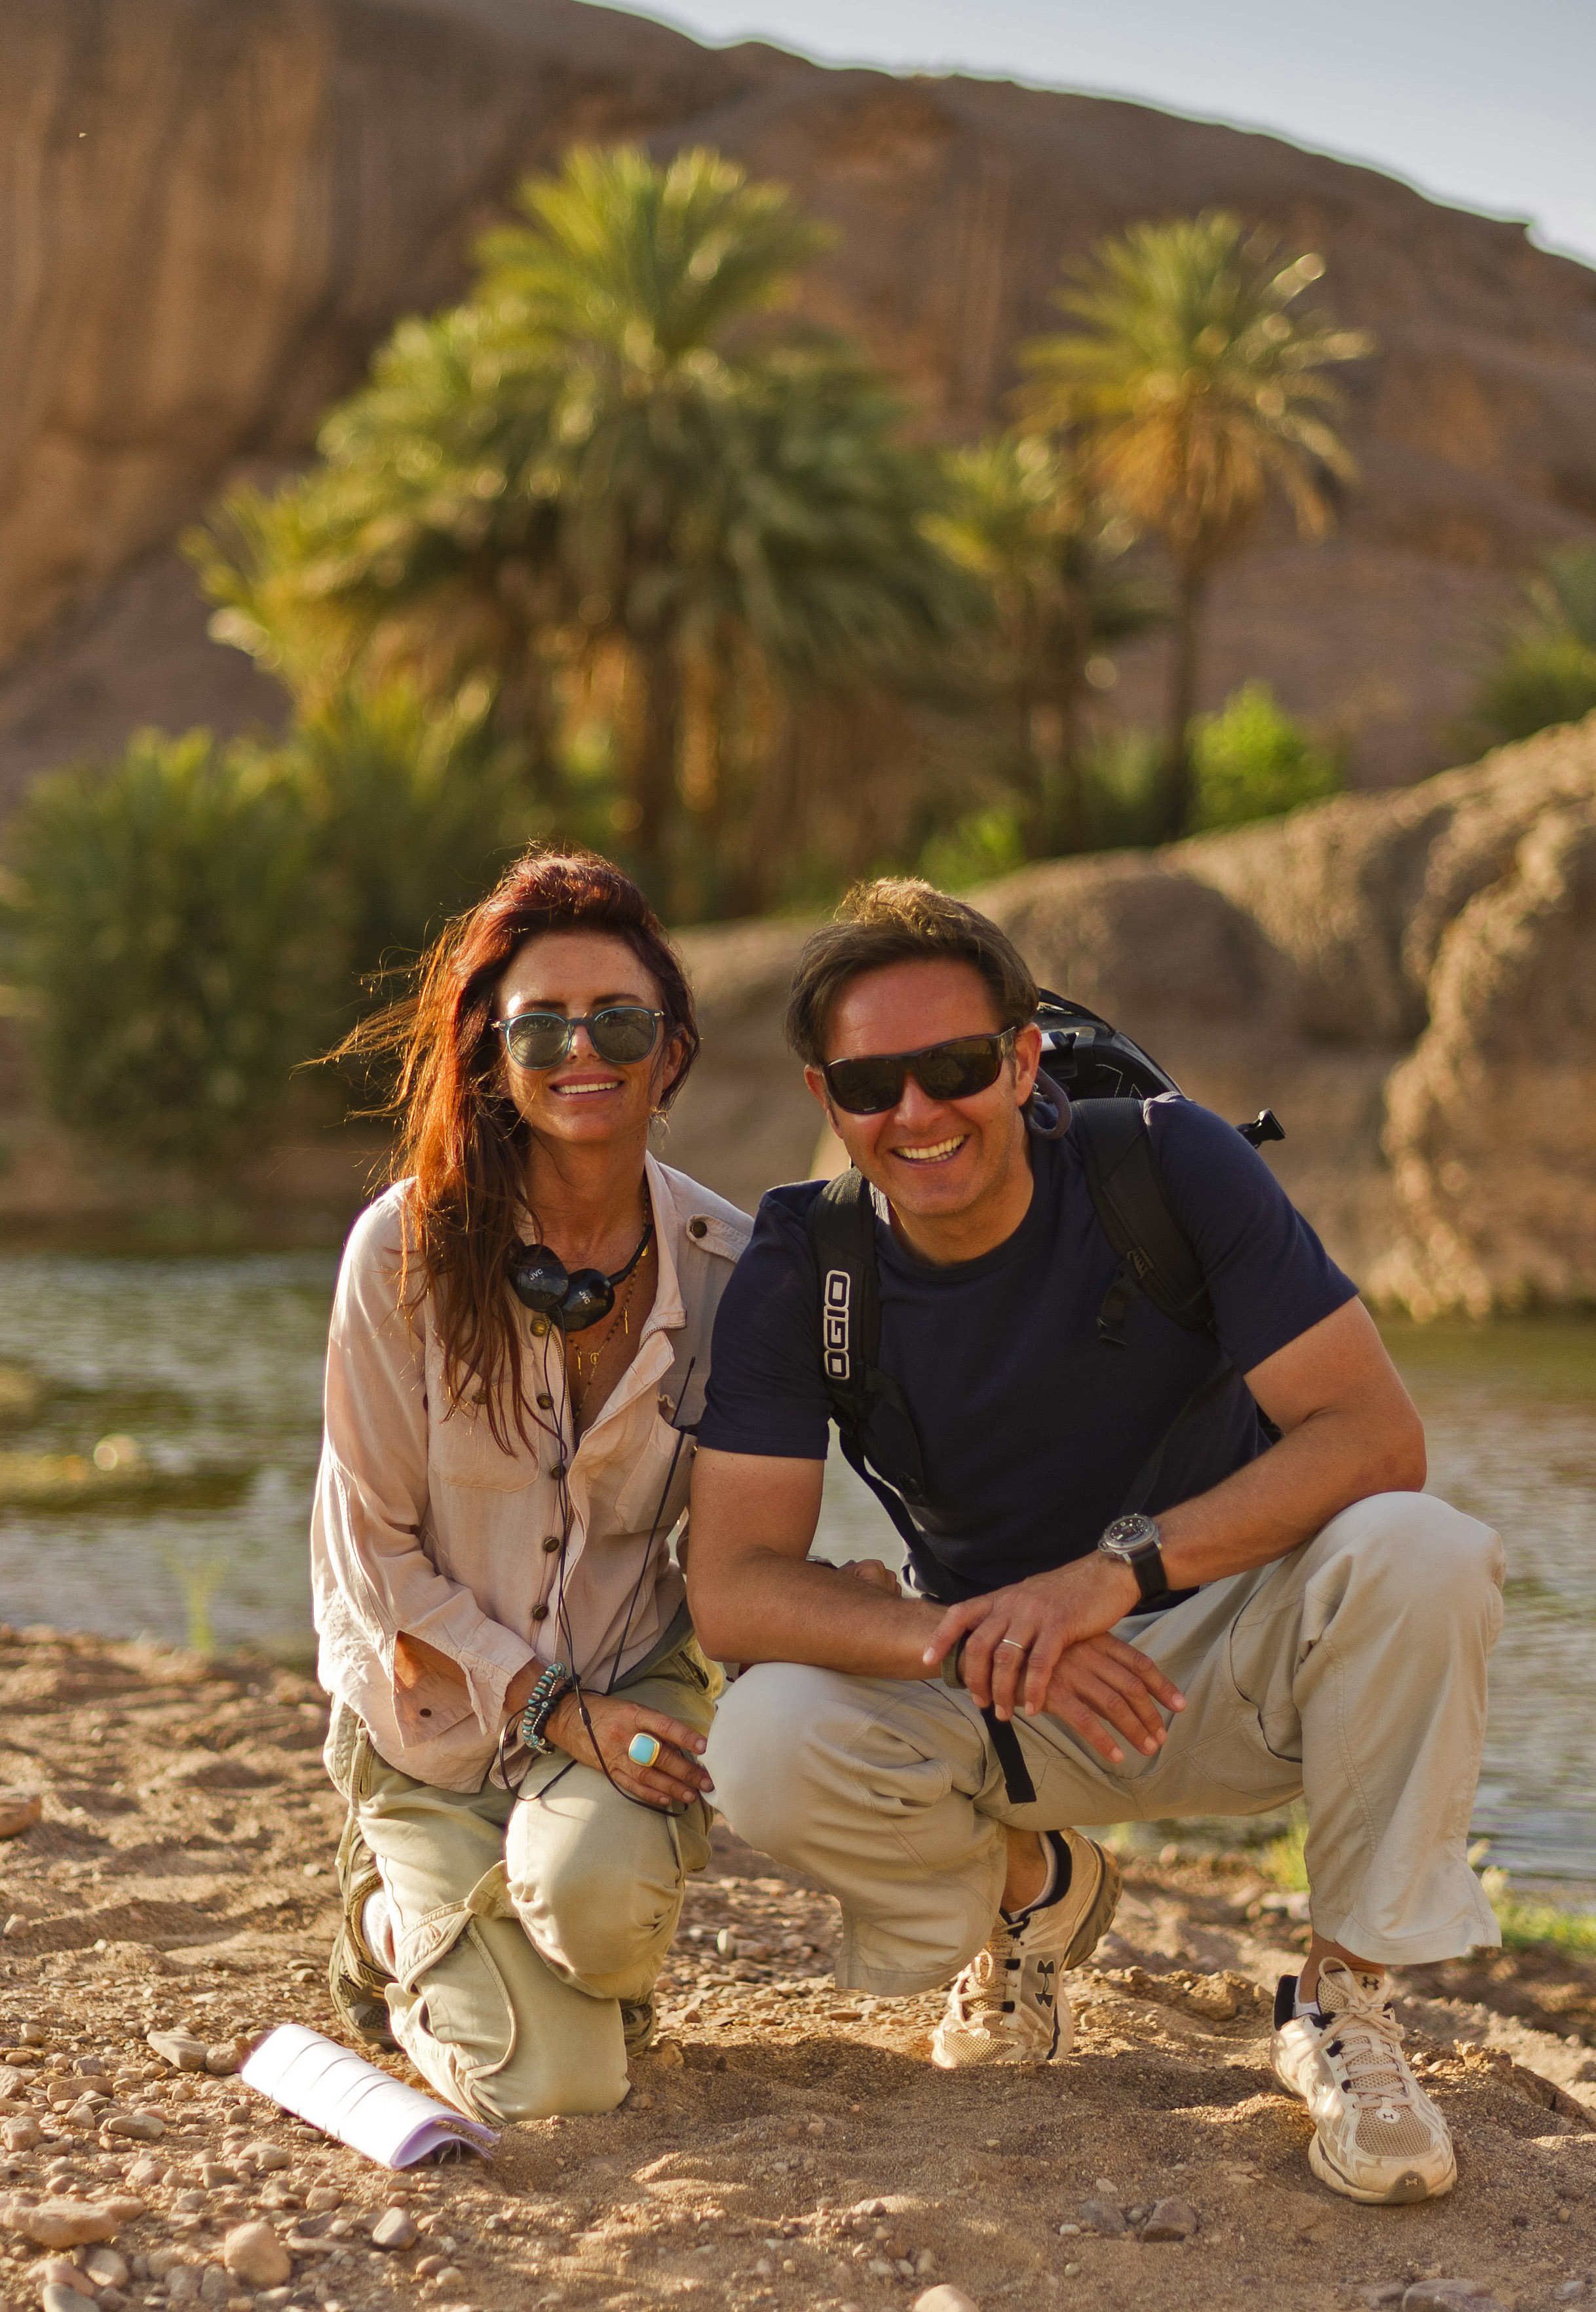 Roma Downey and Mark Burnett on Morocco location for the shooting on The Bible in 2012